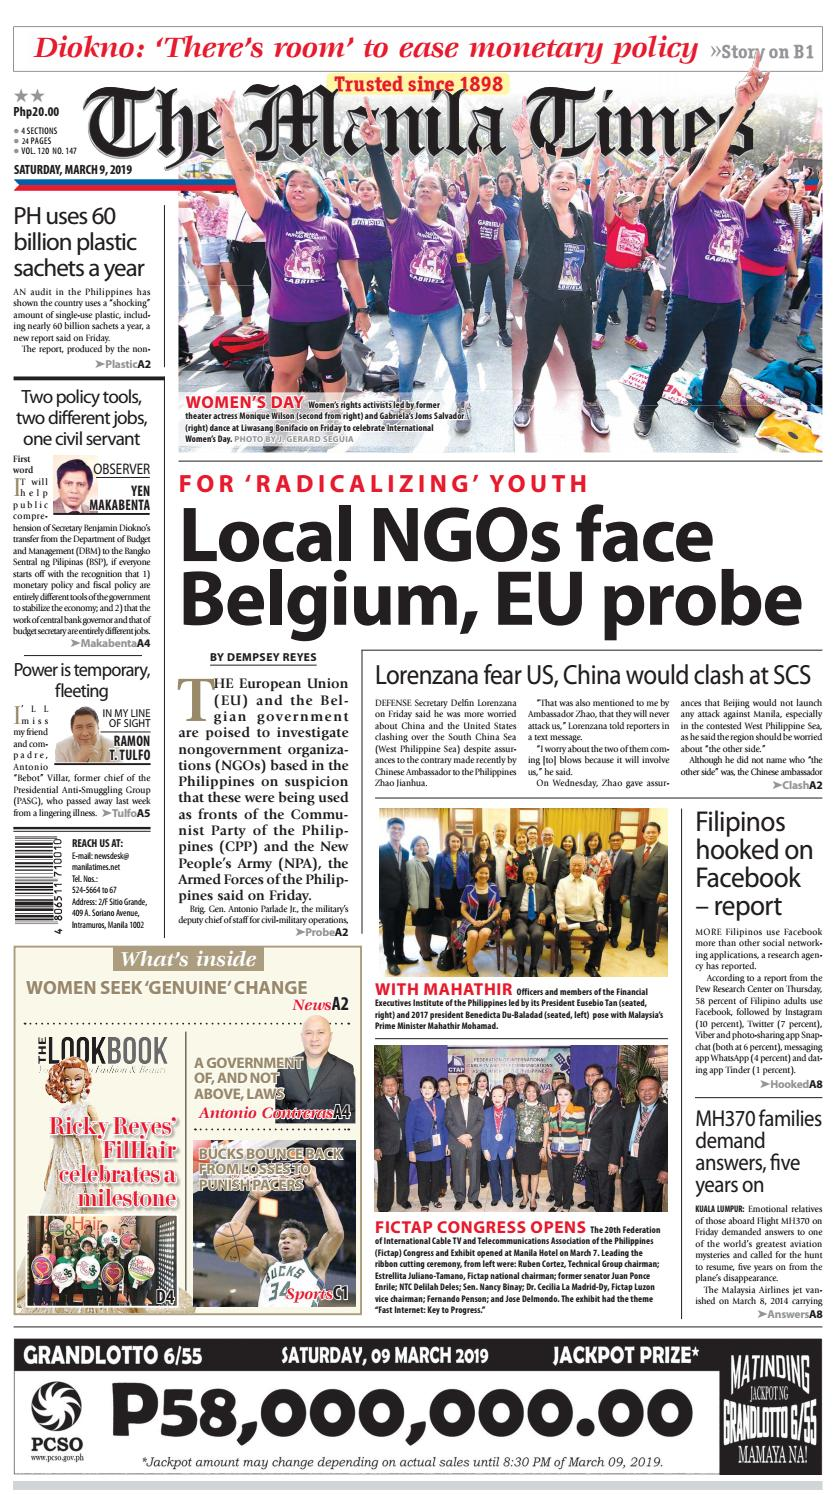 THE MANILA TIMES | MARCH 09, 2019 by The Manila Times - issuu